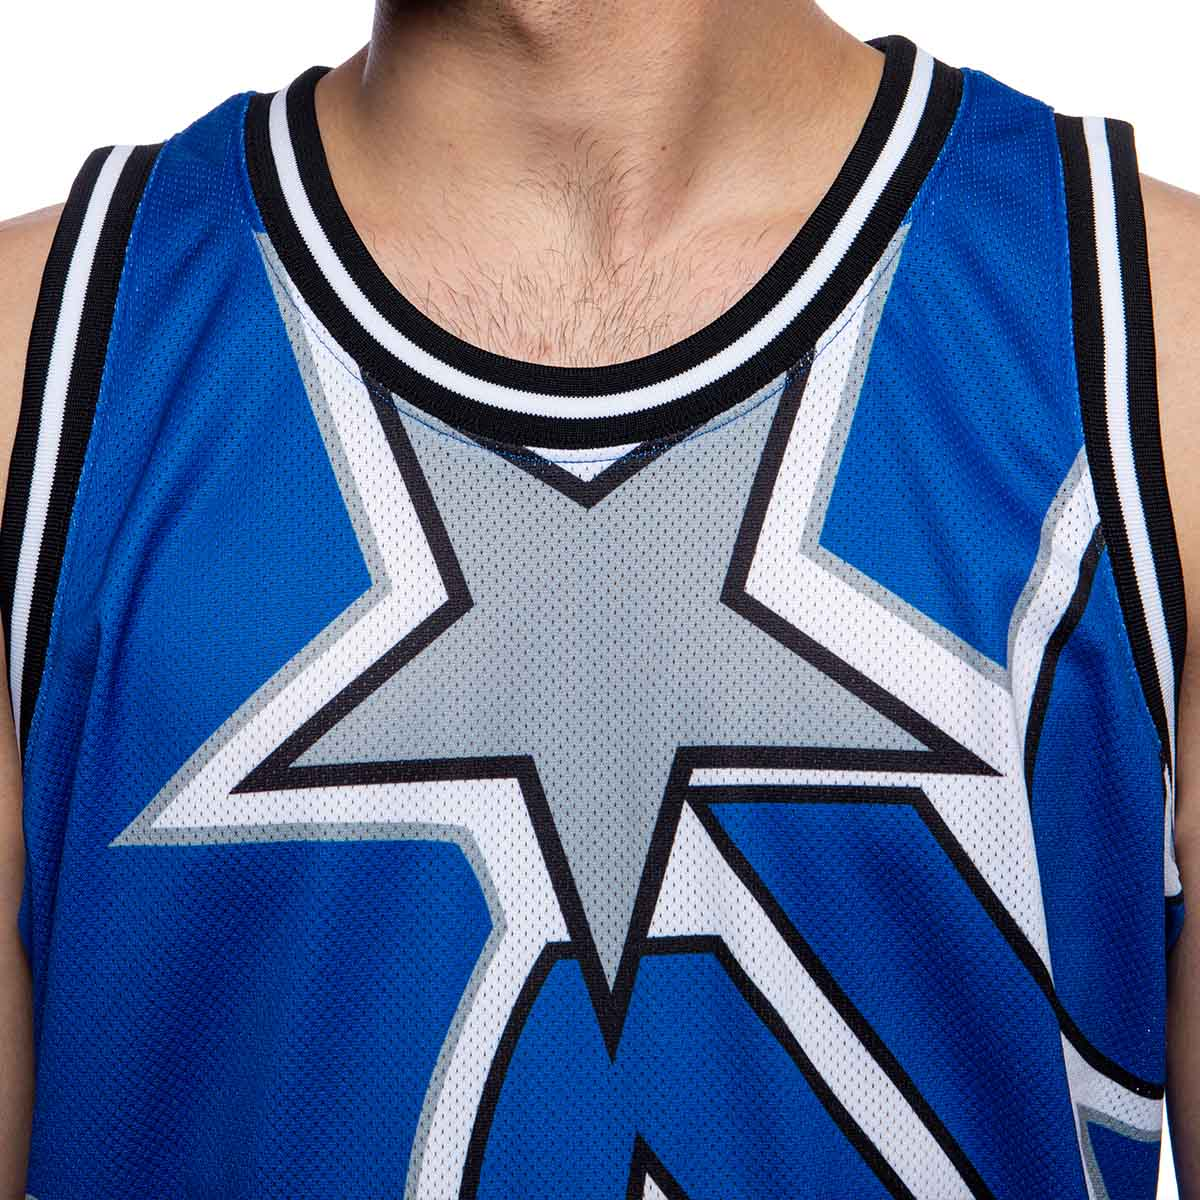 M/&N Big Face Basketball Jersey HWC Orlando Magic